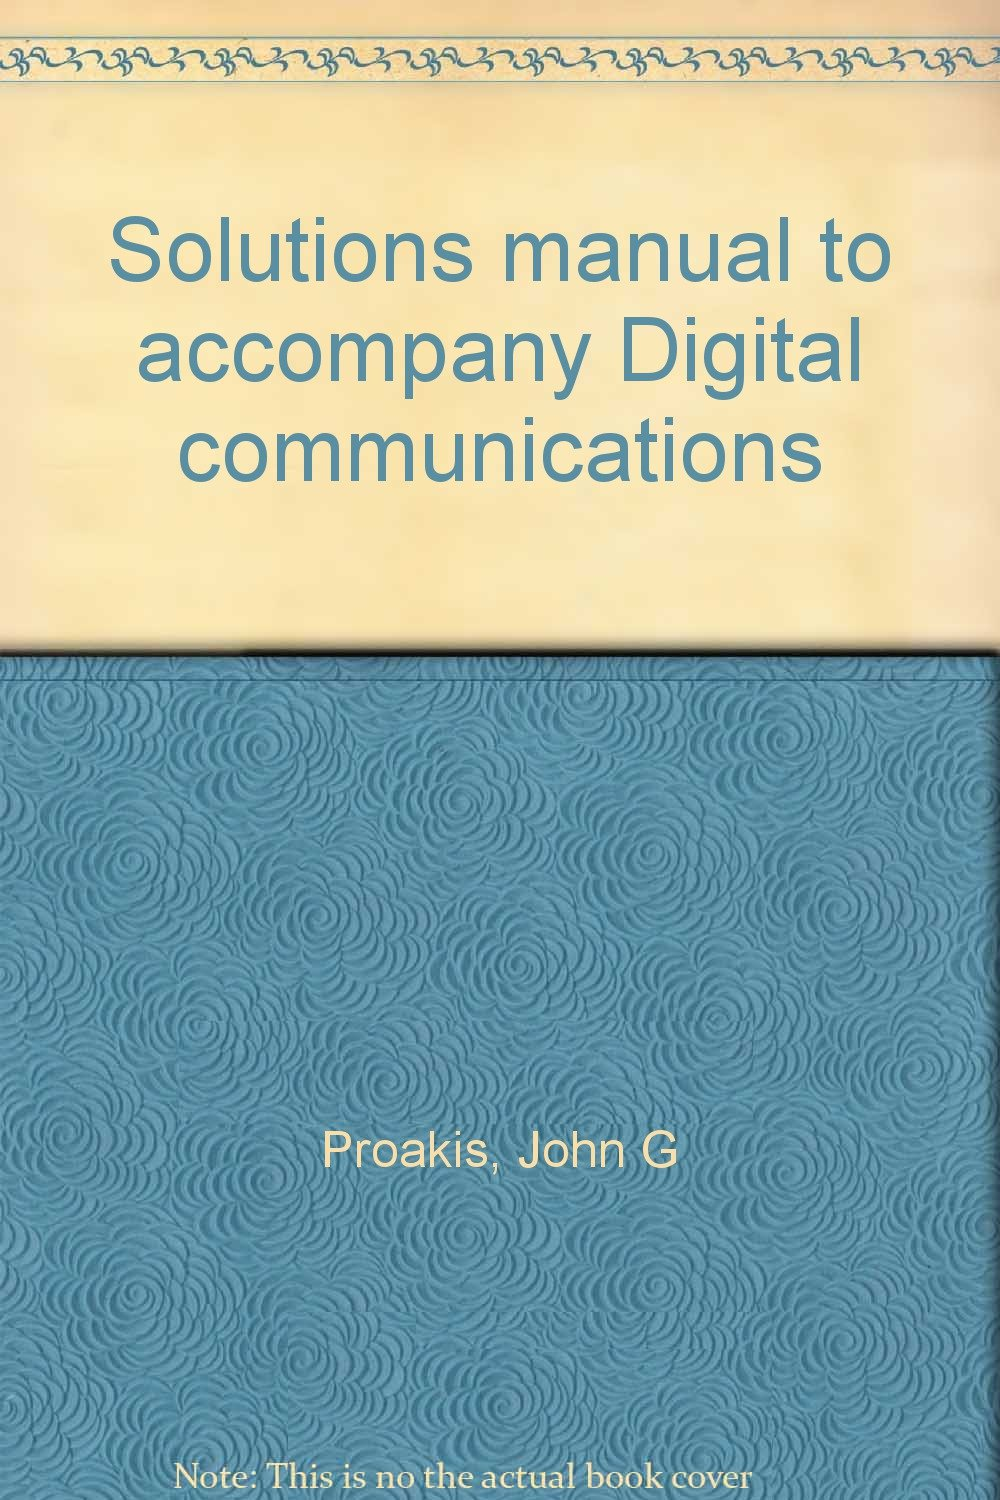 Solutions manual to accompany Digital communications: John G Proakis:  9780070509283: Amazon.com: Books